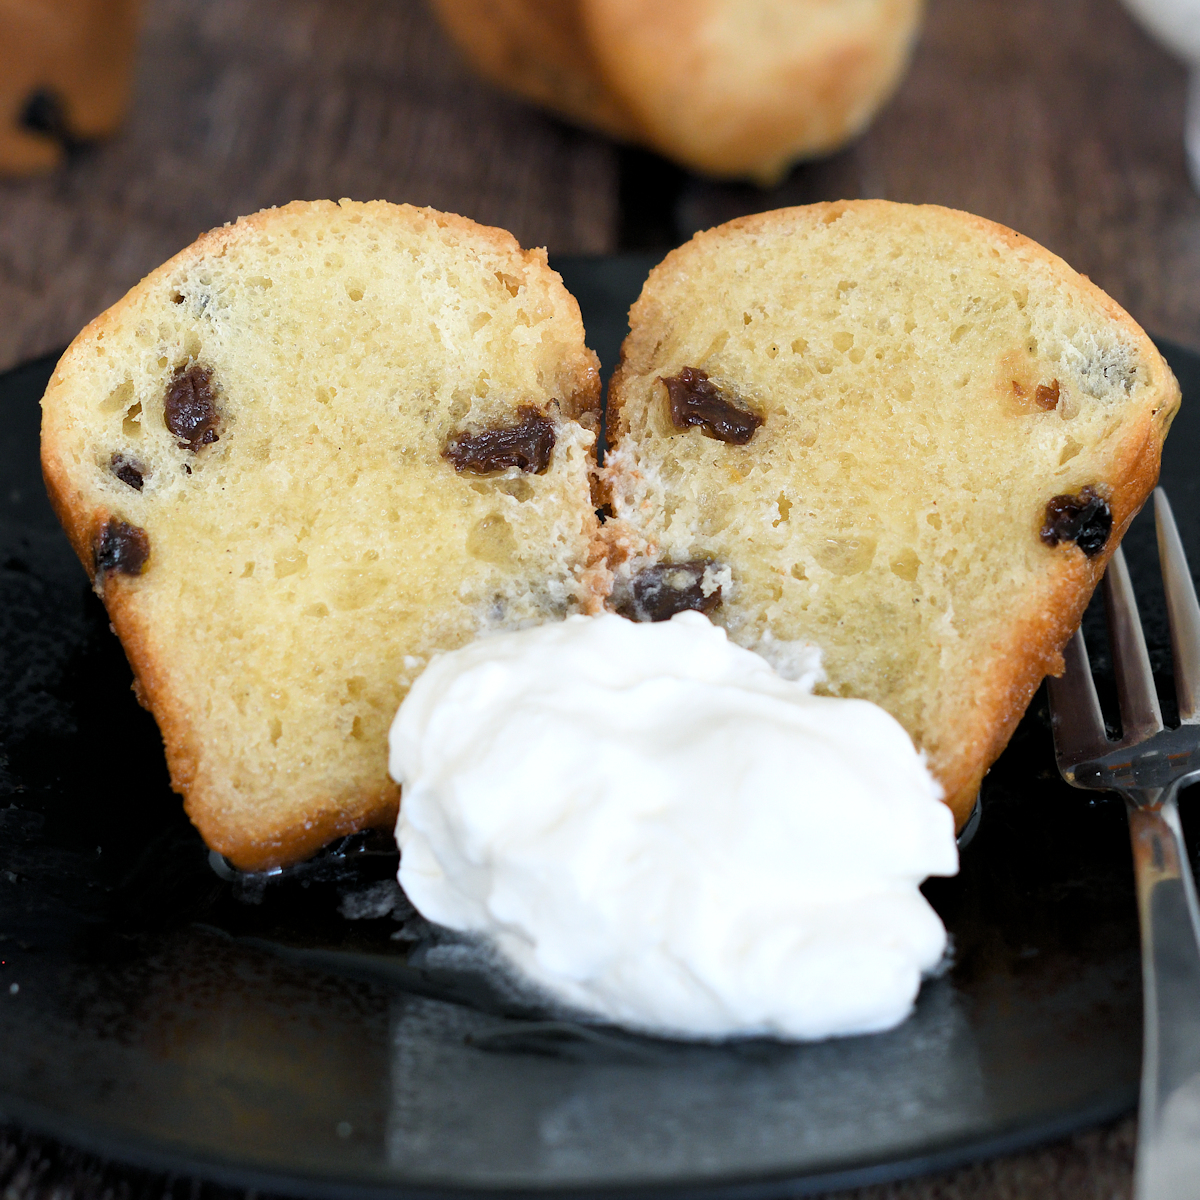 a baba au rhum on a plate with whipped cream